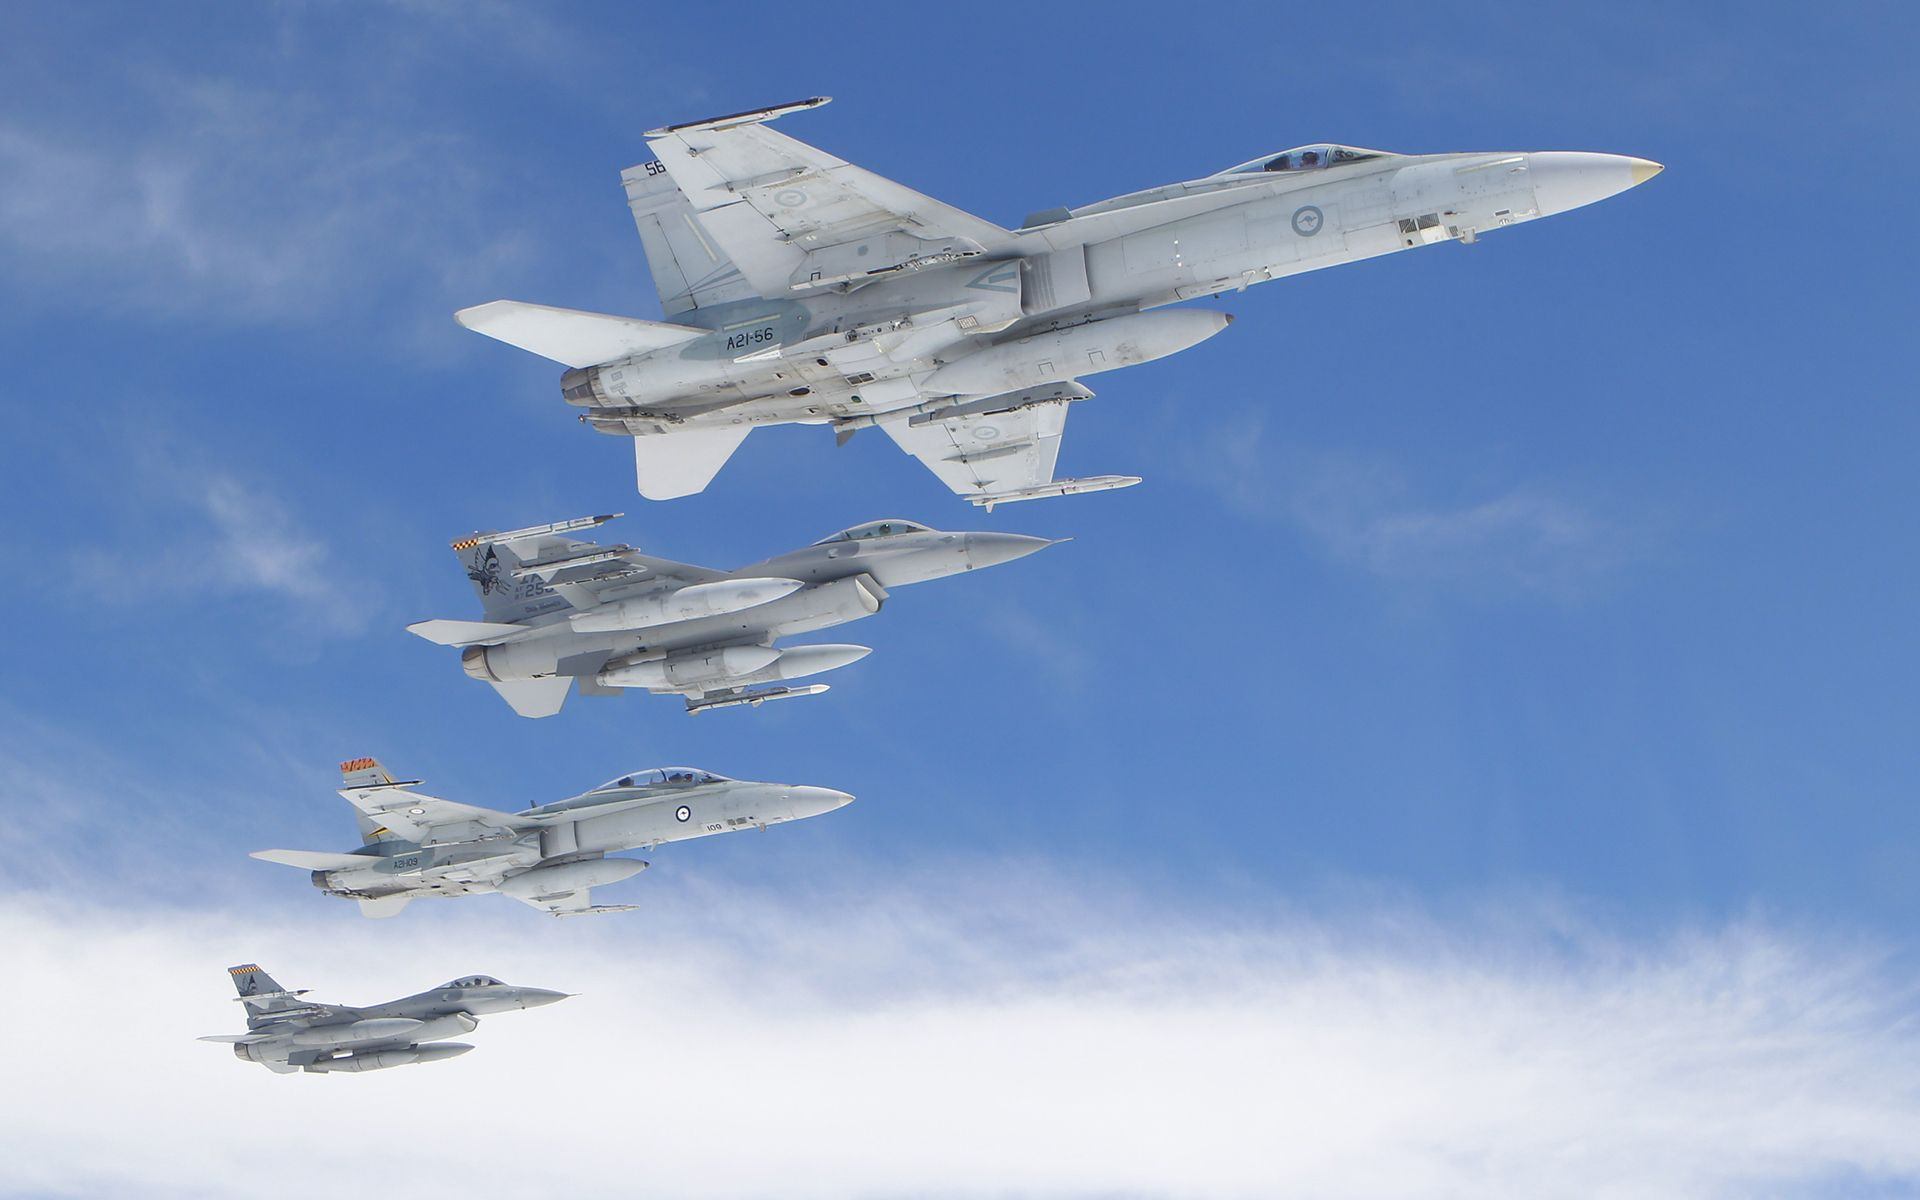 F-16 Falcons and F/A-18 Hornets